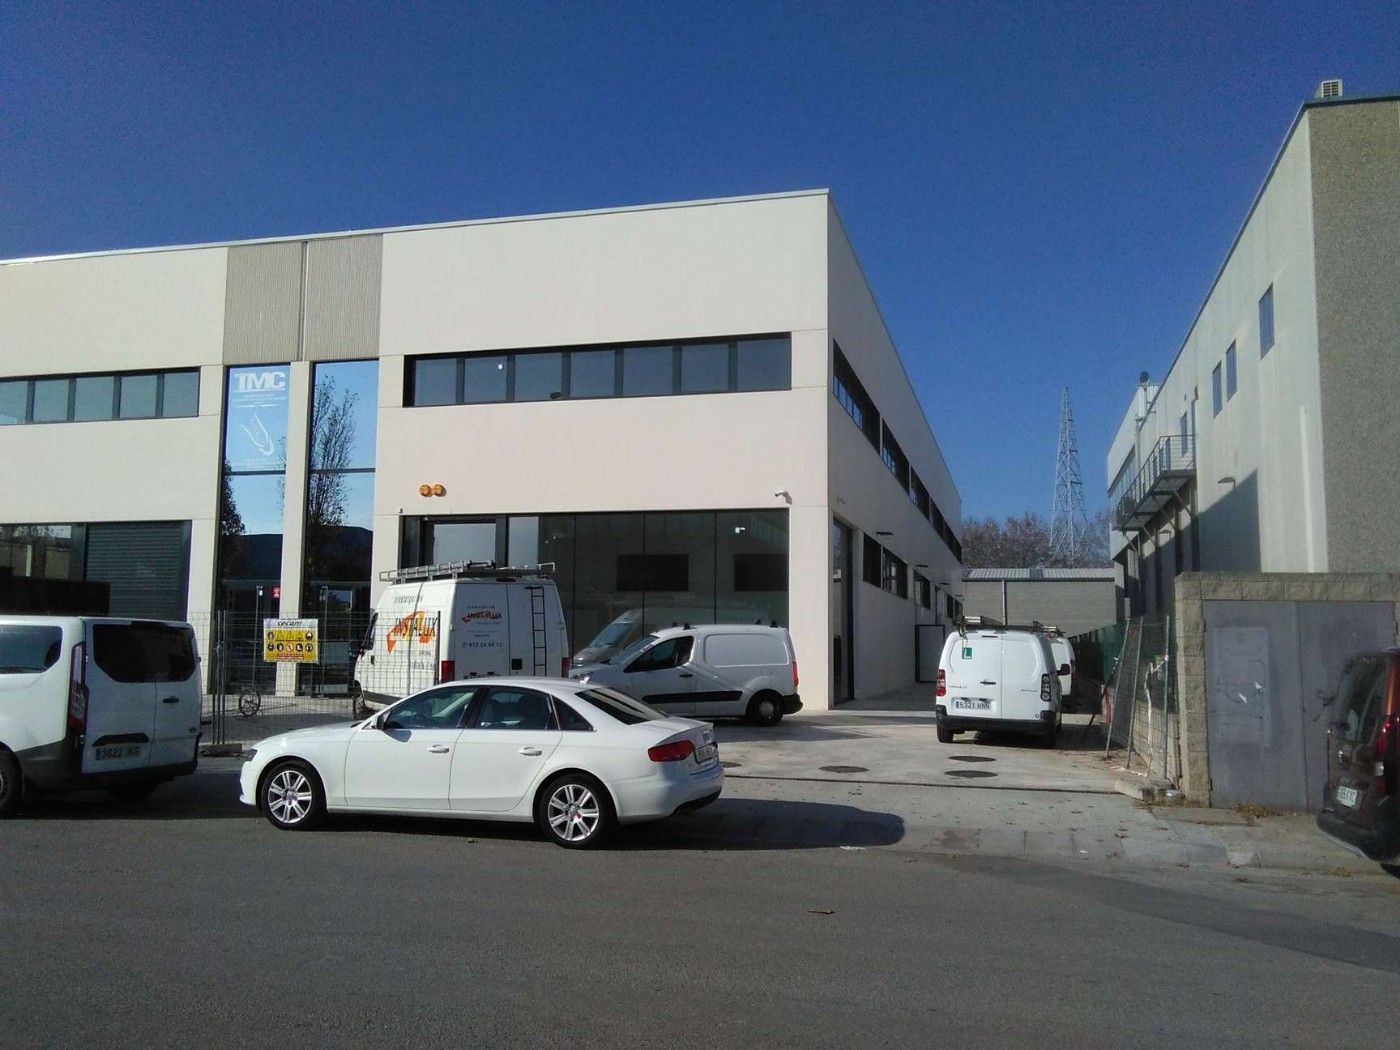 Affitto Capannone industriale in Mas Xirgu. Amb parking inclòs per clients